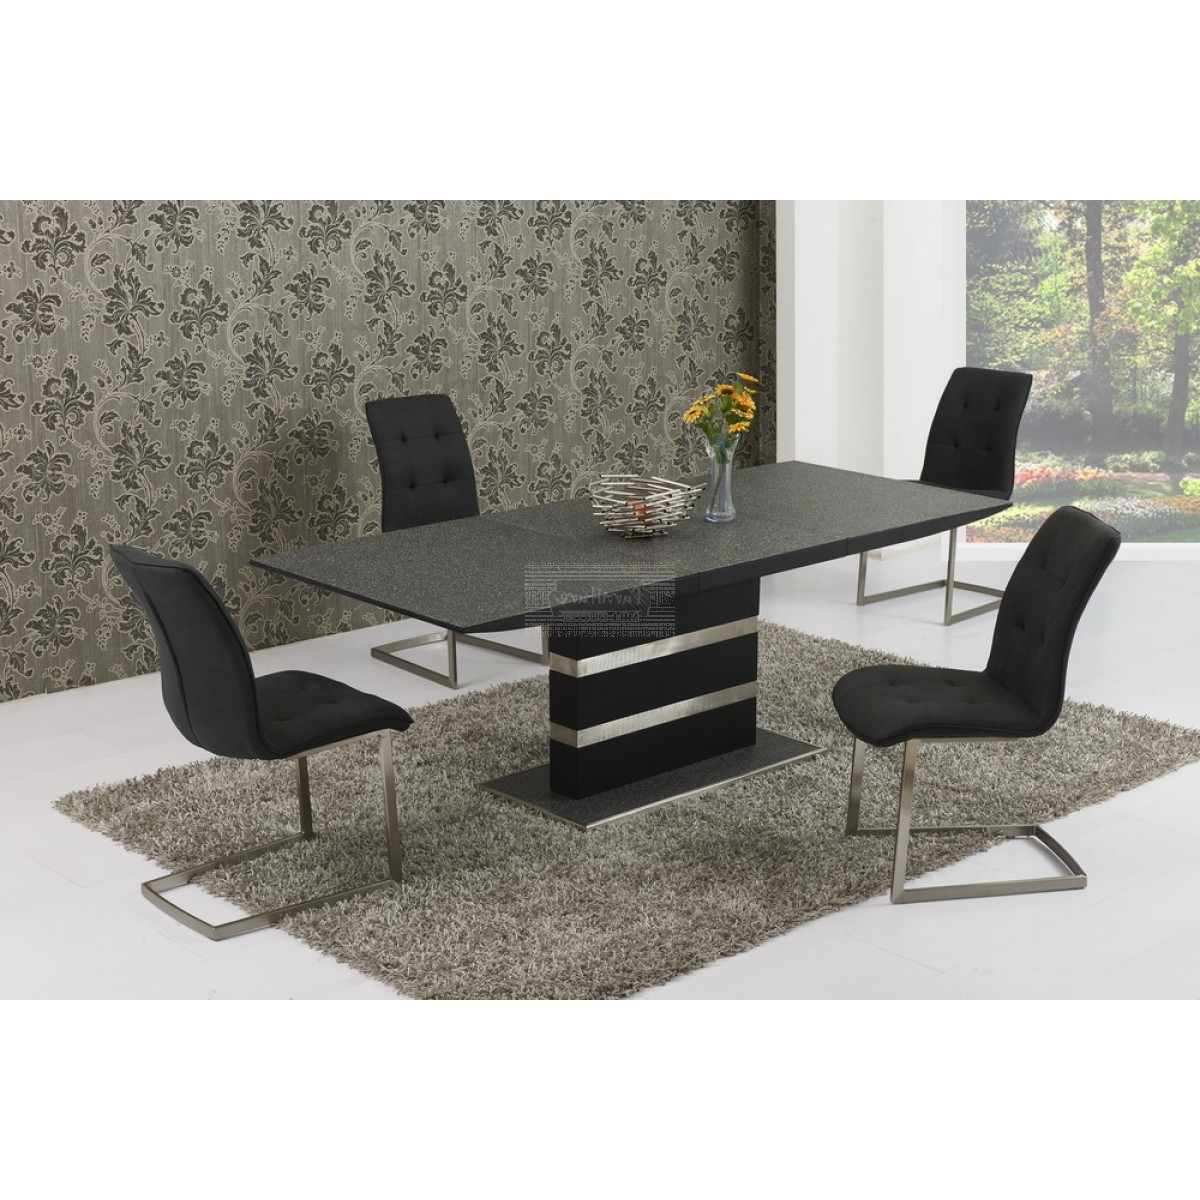 Black Extendable Dining Tables And Chairs Within Recent Alessandro Black Stone Effect Extending Dining Table 160/ (View 4 of 25)